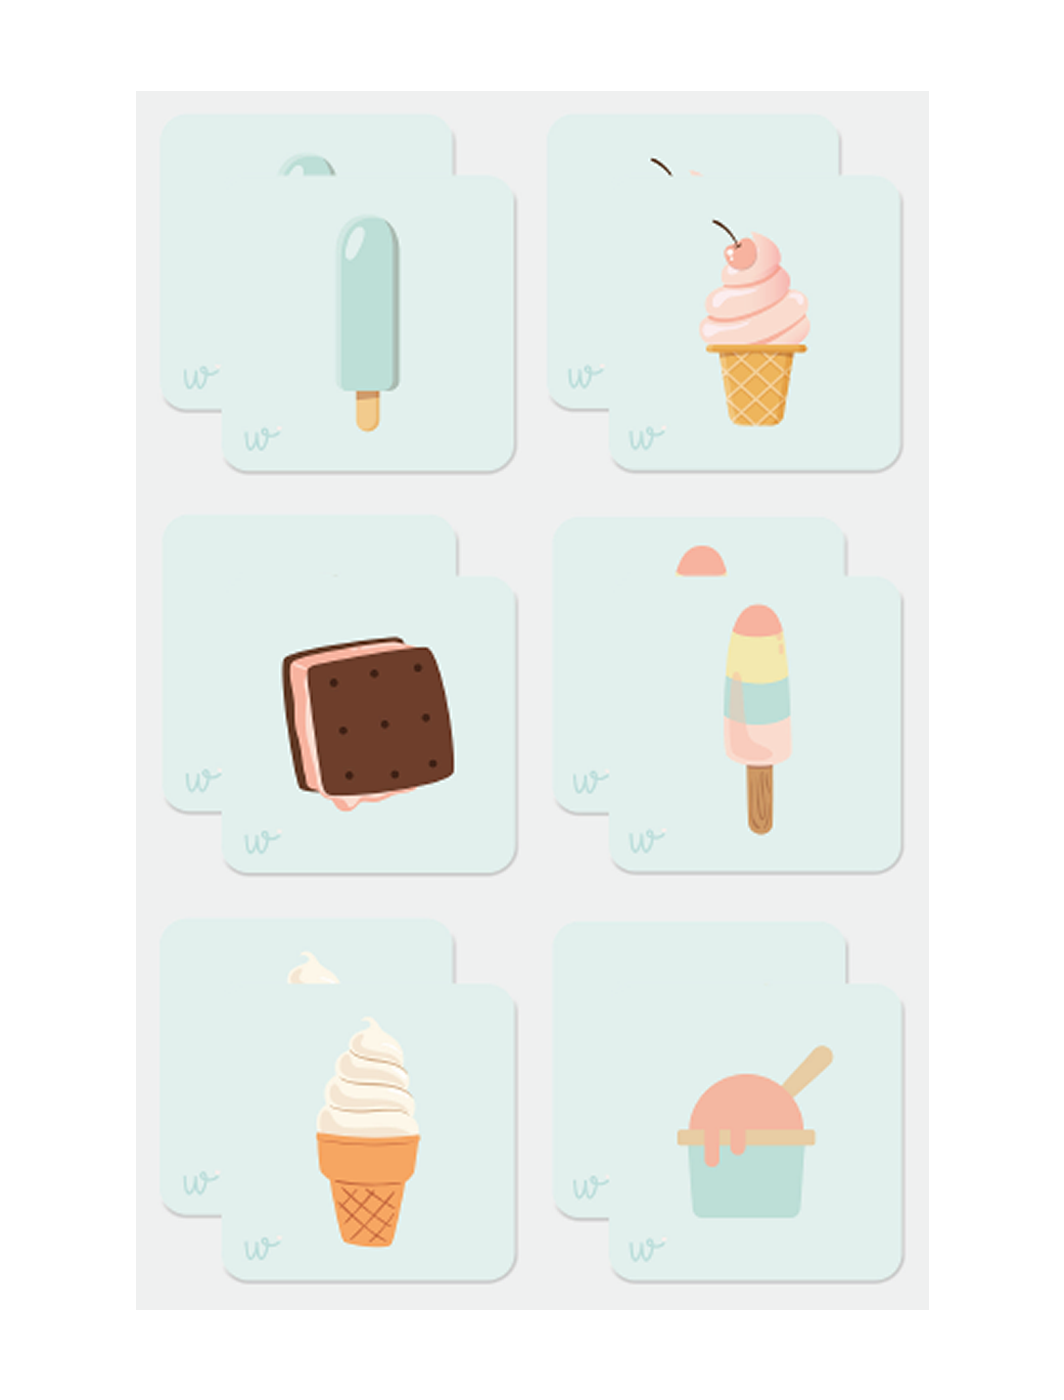 MEMORY EDUCATIVO DE HELADOS - ICE-CREAM MEMORY